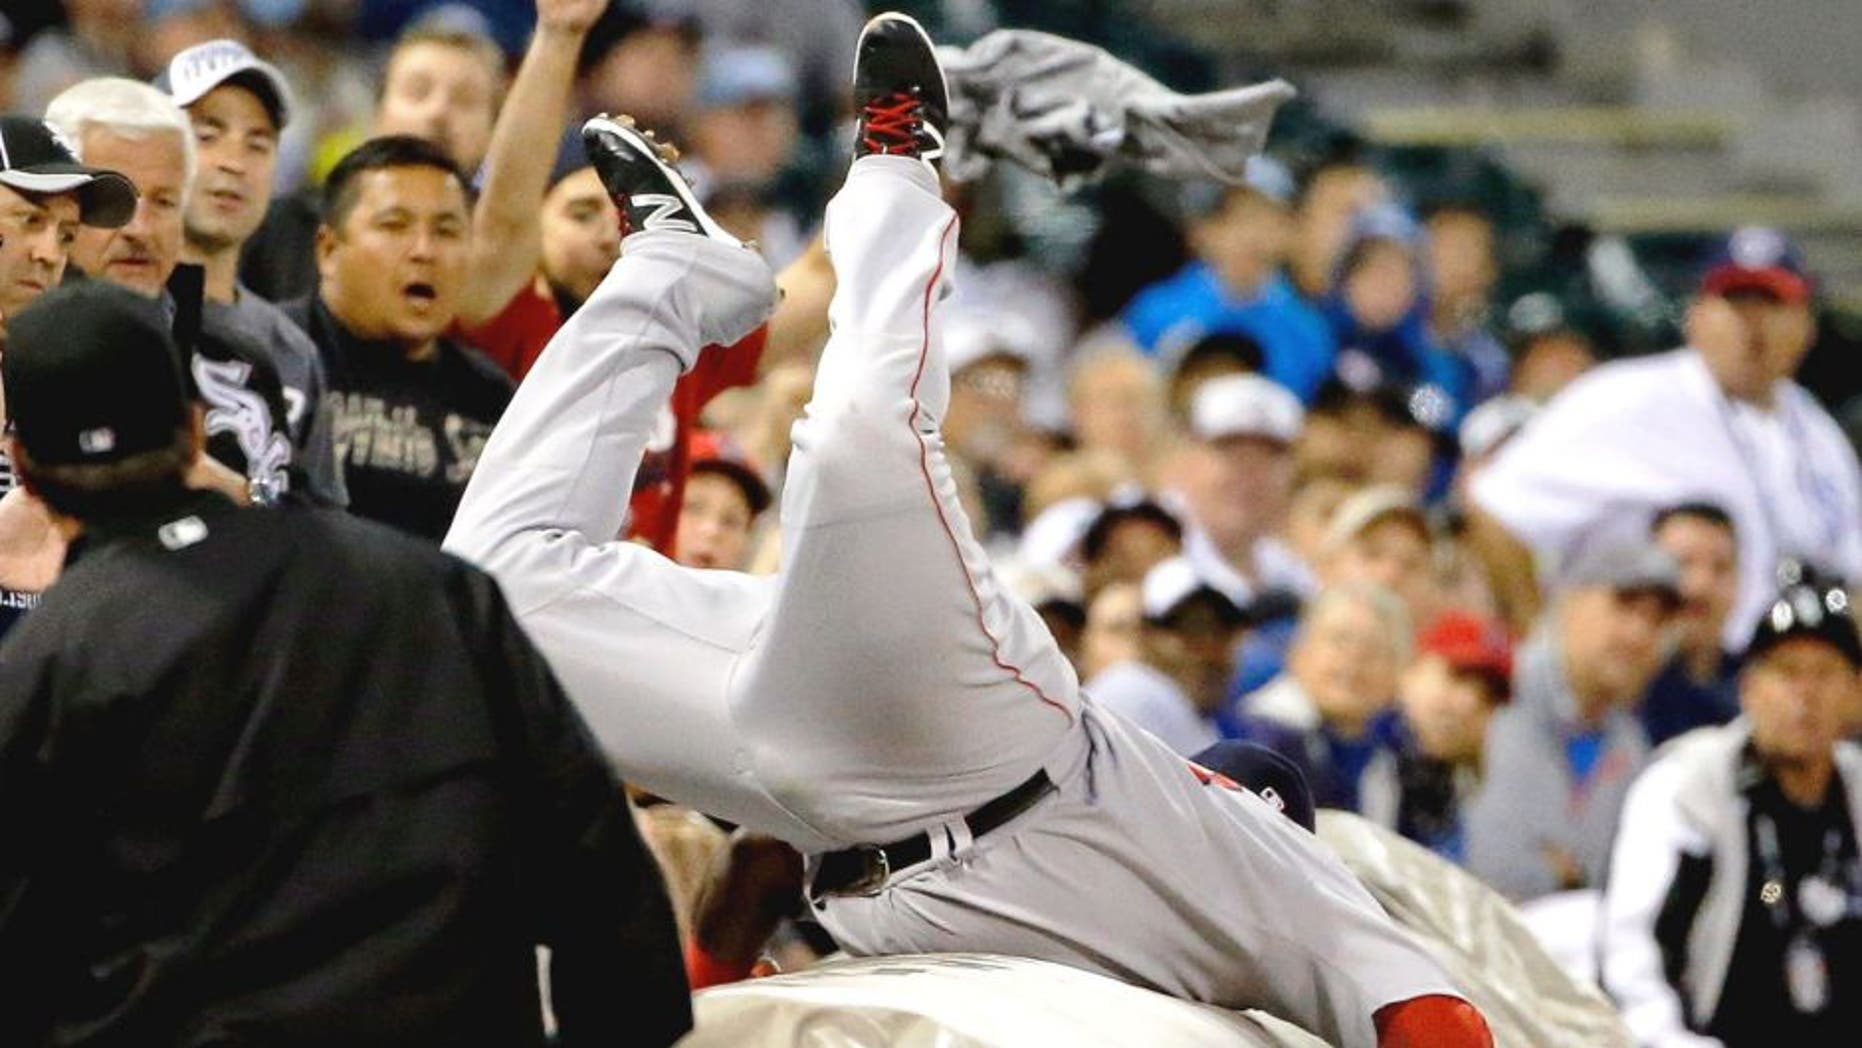 CHICAGO, IL - AUGUST 24: Pablo Sandoval #48 of the Boston Red Sox leaps onto the tarp to make a catch for an out against the Chicago White Sox during the second inning at U.S. Cellular Field on August 24, 2015 in Chicago, Illinois. (Photo by Jon Durr/Getty Images)